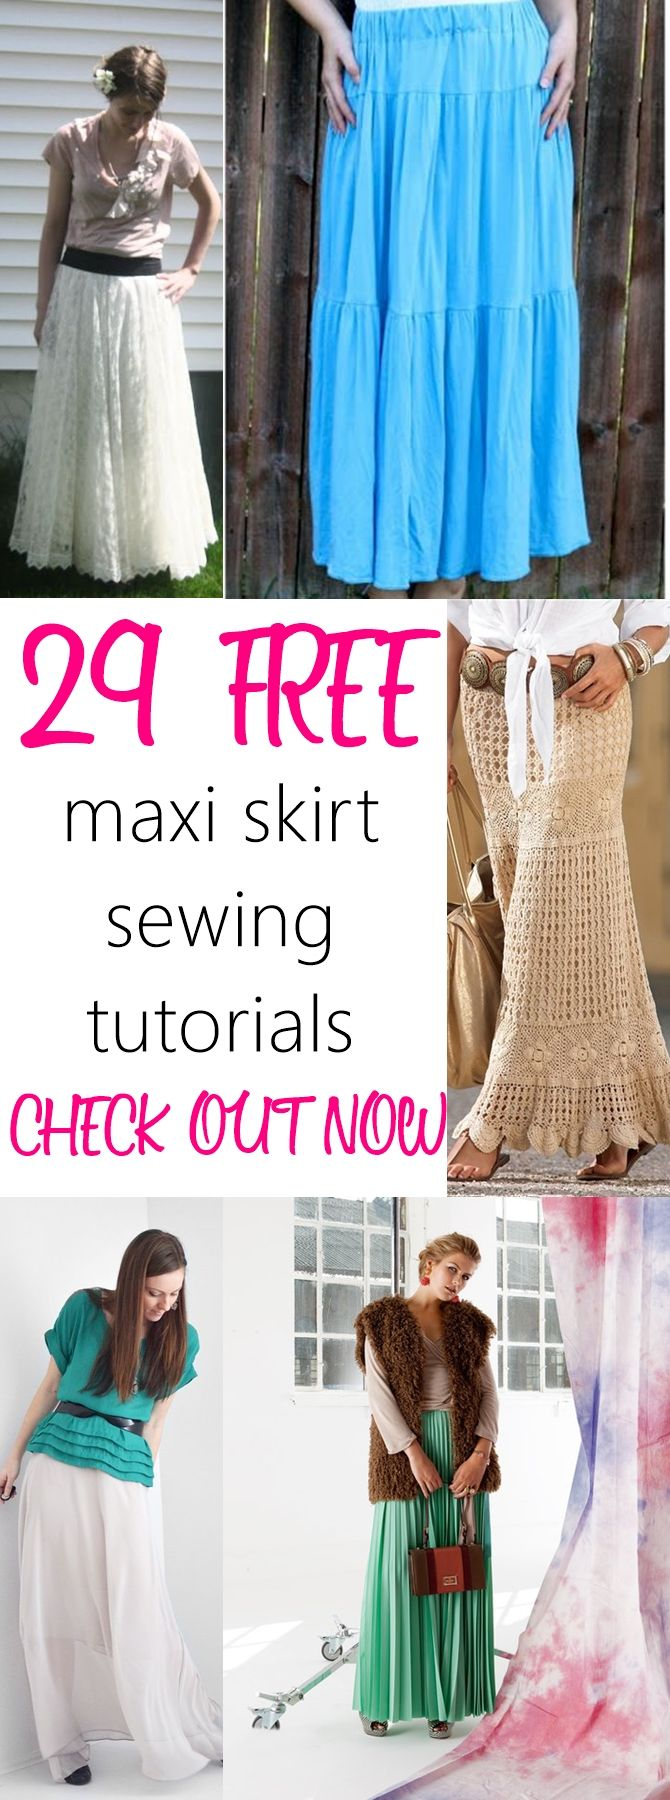 Maxi Skirts Free Sewing Patterns and Tutorials | Kleidung nähen ...